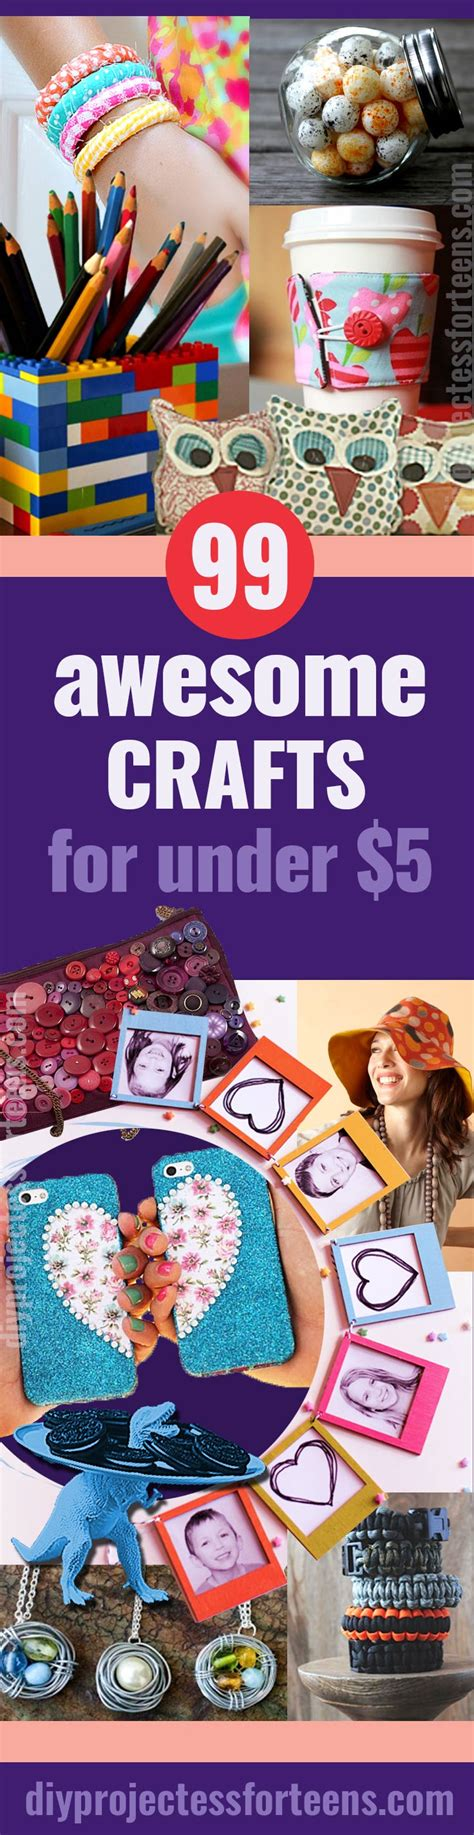 99 Awesome Crafts You Can Make For Less Than $5 Diy